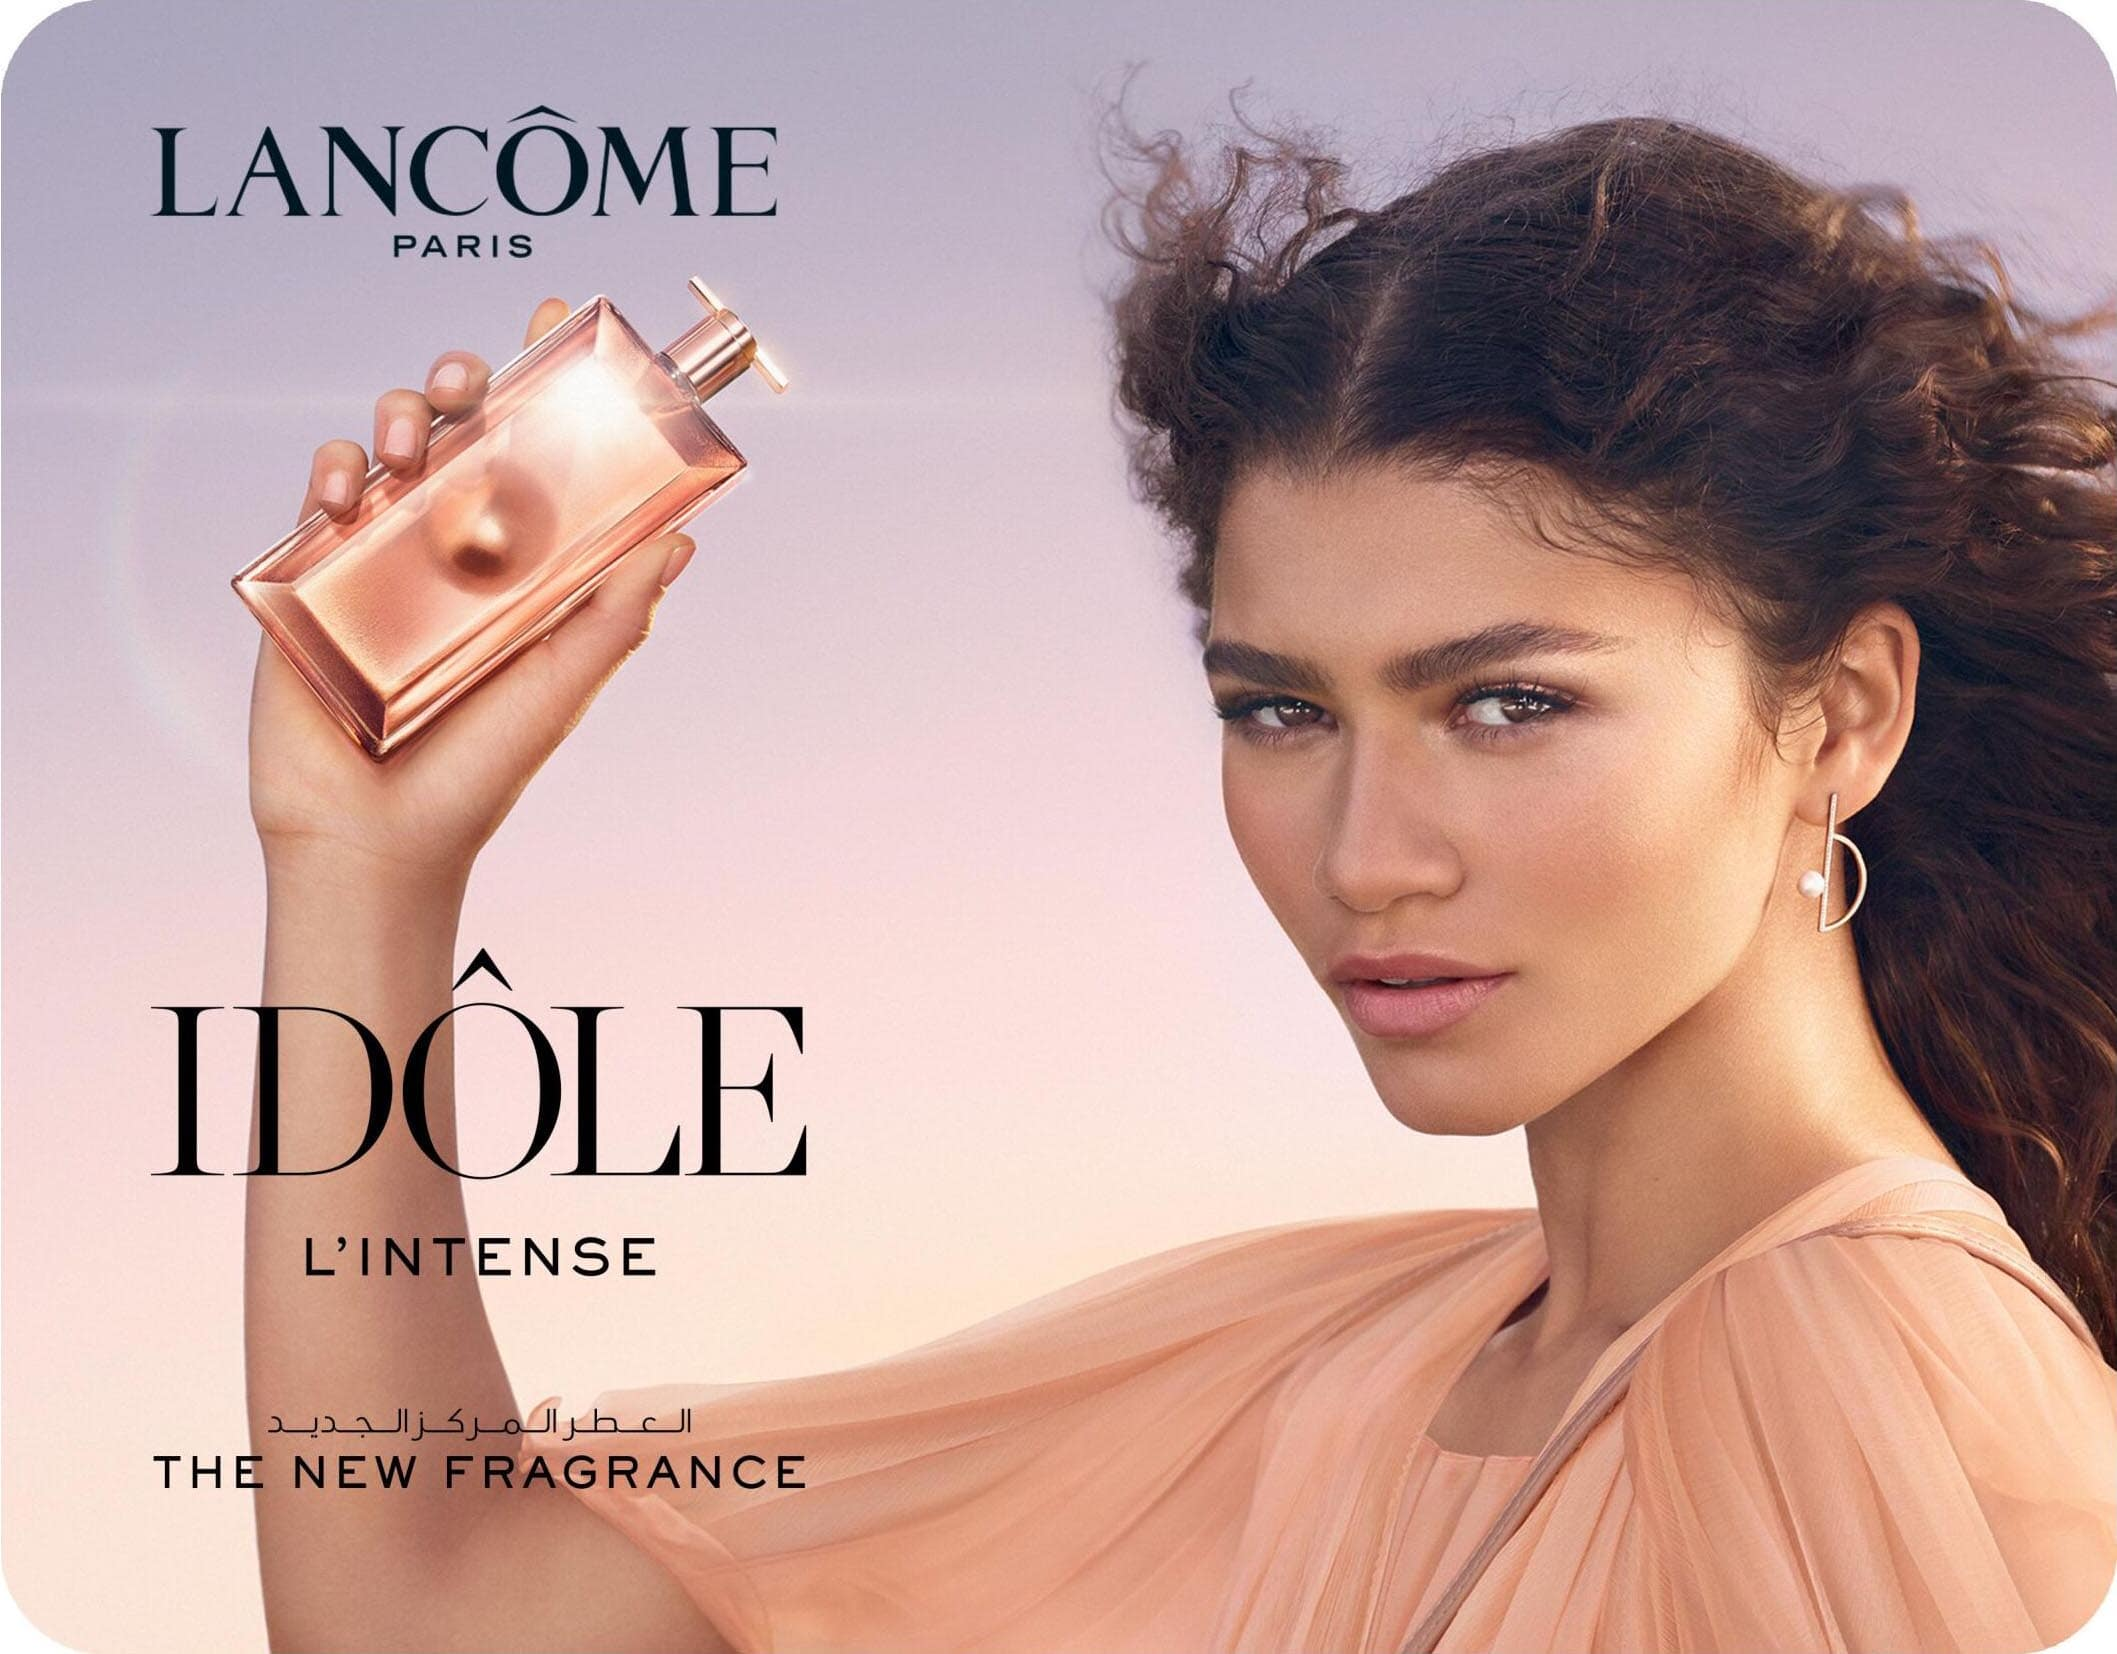 06_bei_Lancome_mobile_banner copy-min